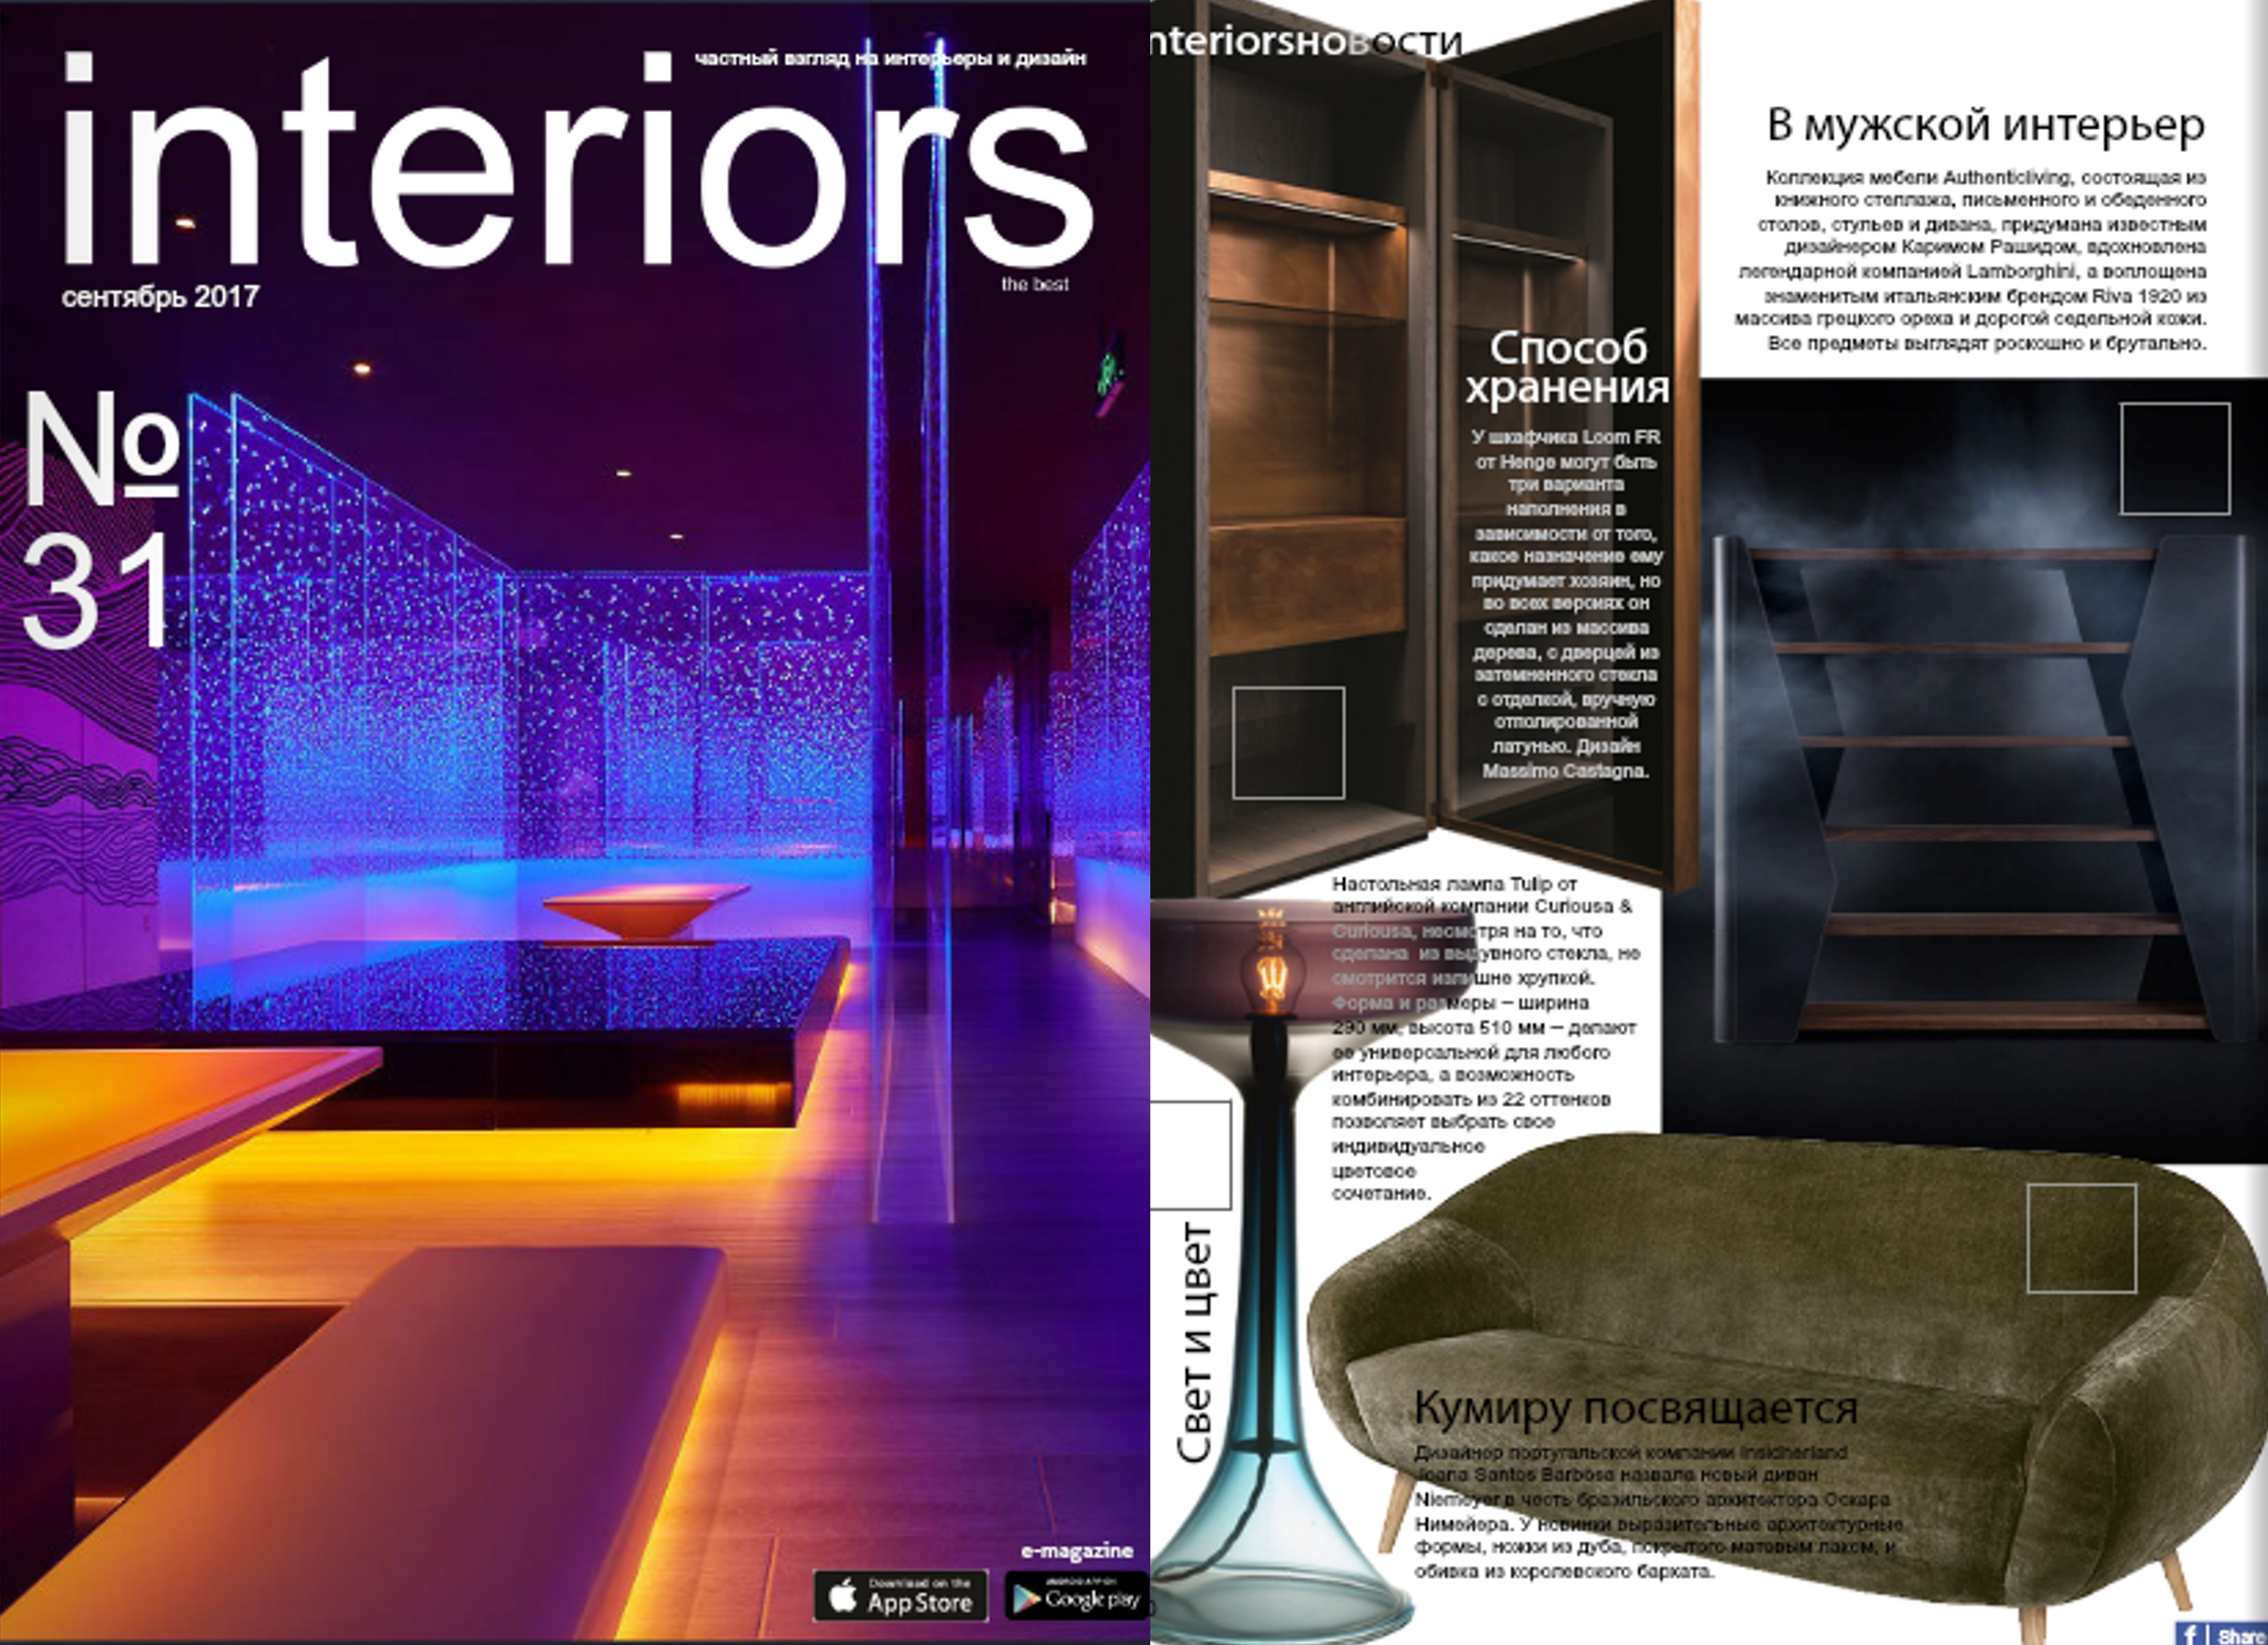 INSIDHERLAND Niemeyer Sofa Seating Upholstery Oak Furniture Architect Design Press Clipping INTERIORS THE BEST Russia